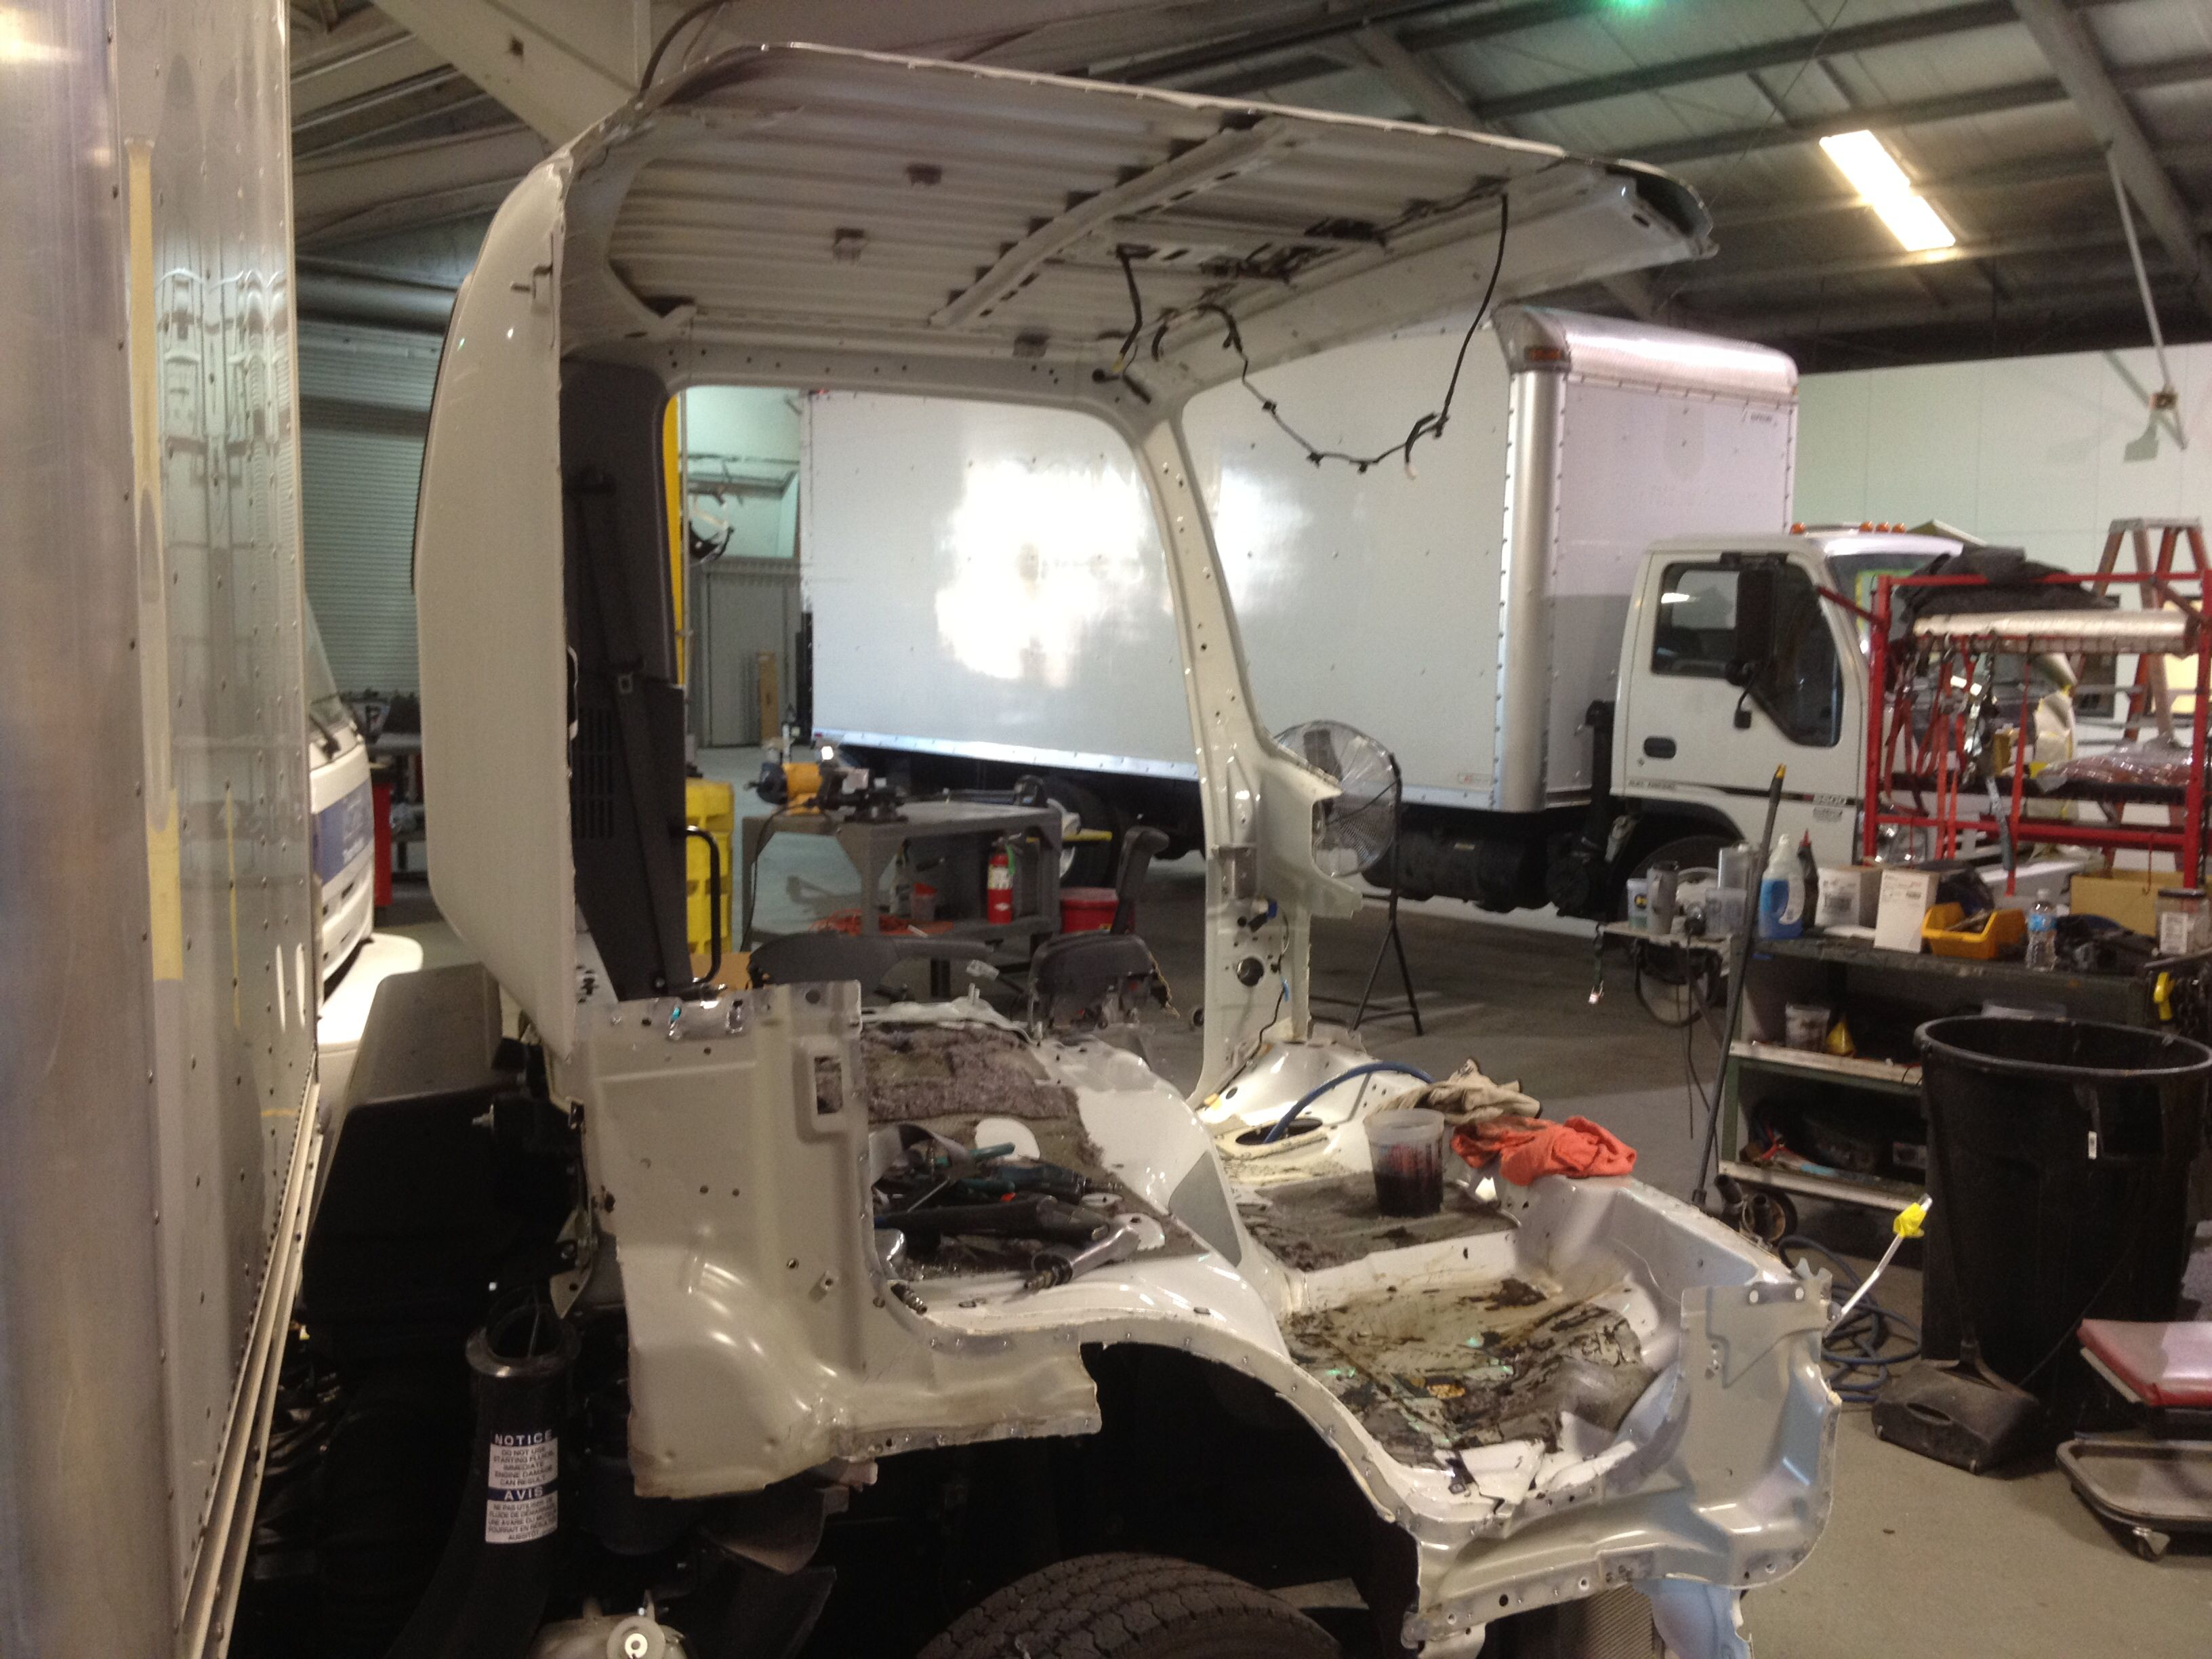 This Isuzu Npr Cab Required Extensive Repair Iptruck S Commercial Truck Body Shop Specializes In This Type Of Co The Body Shop Collision Repair Foot Painting